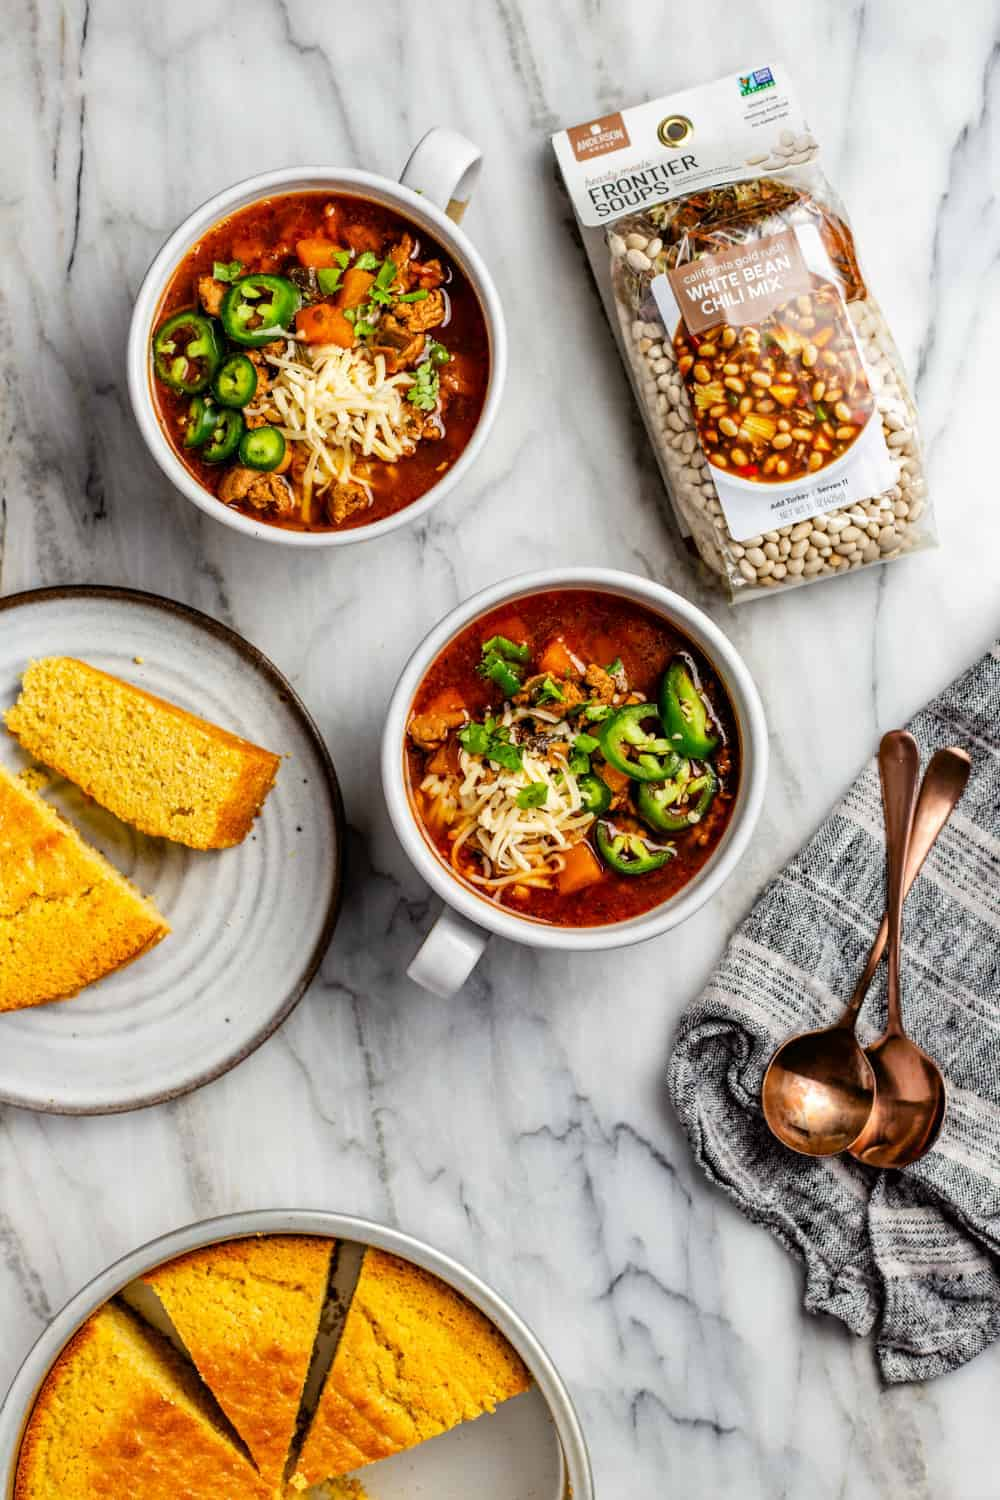 Bowls of white bean chicken chili next to plates of cornbread